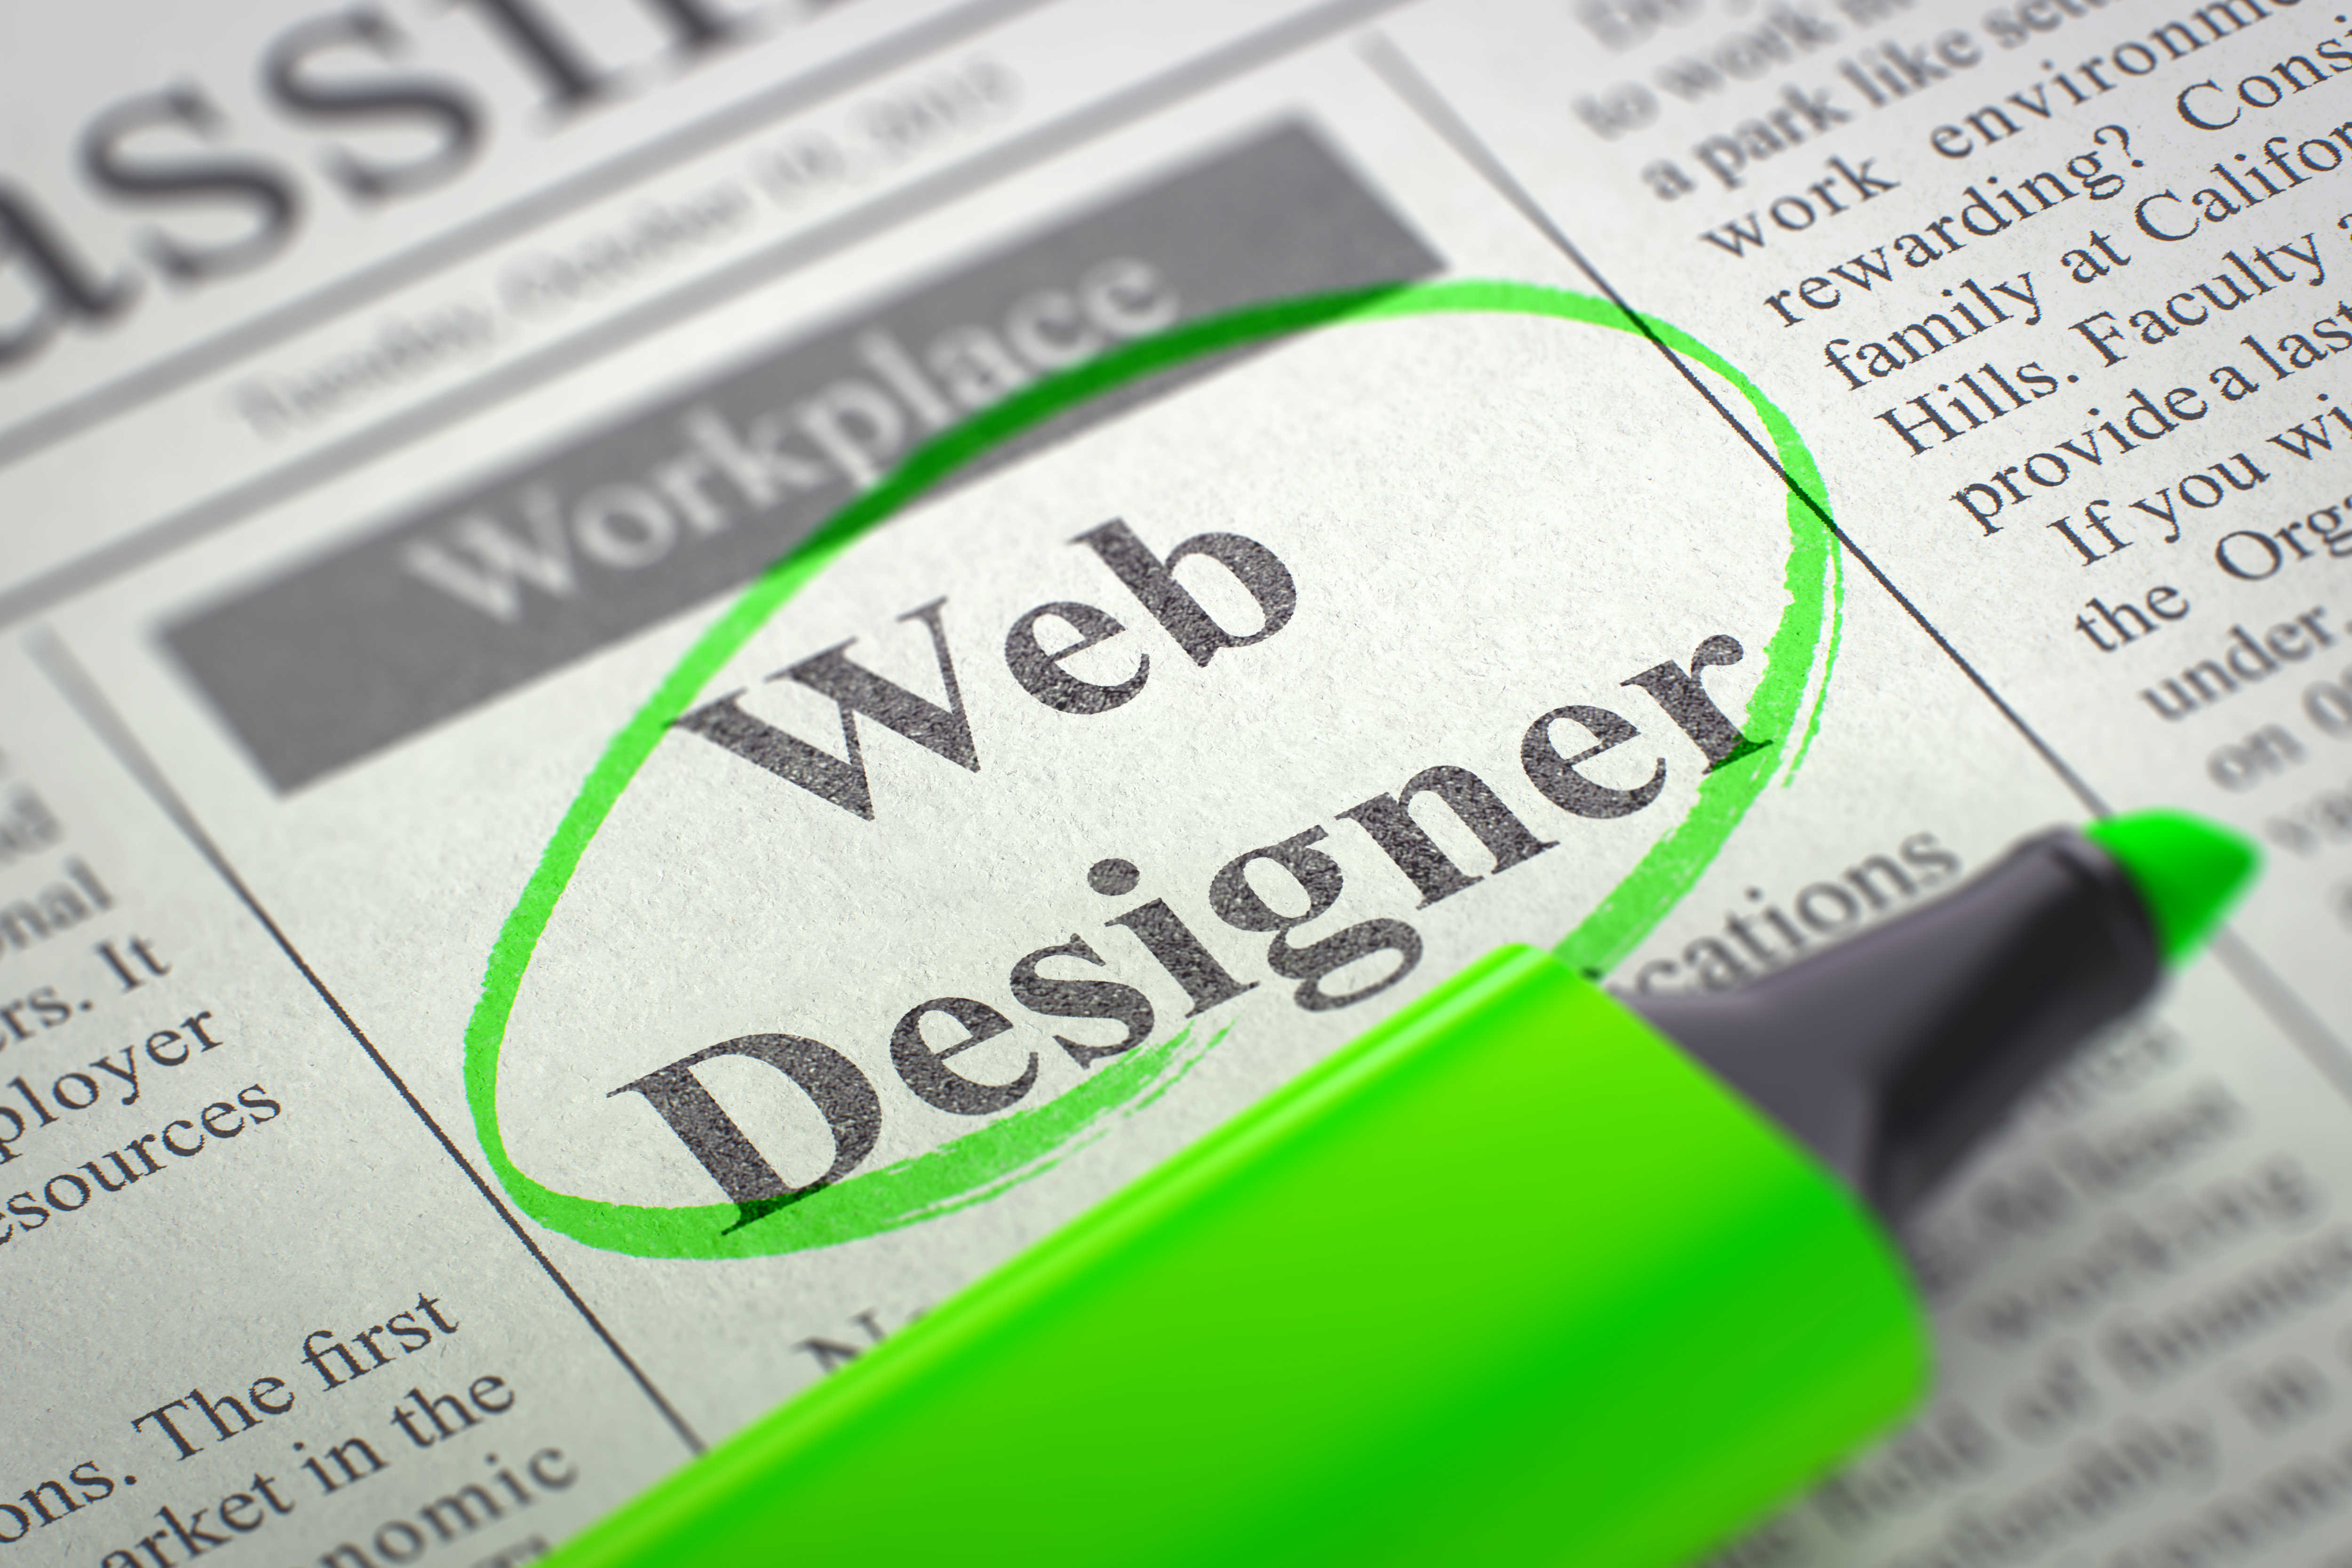 Website Designer Pemberton Township